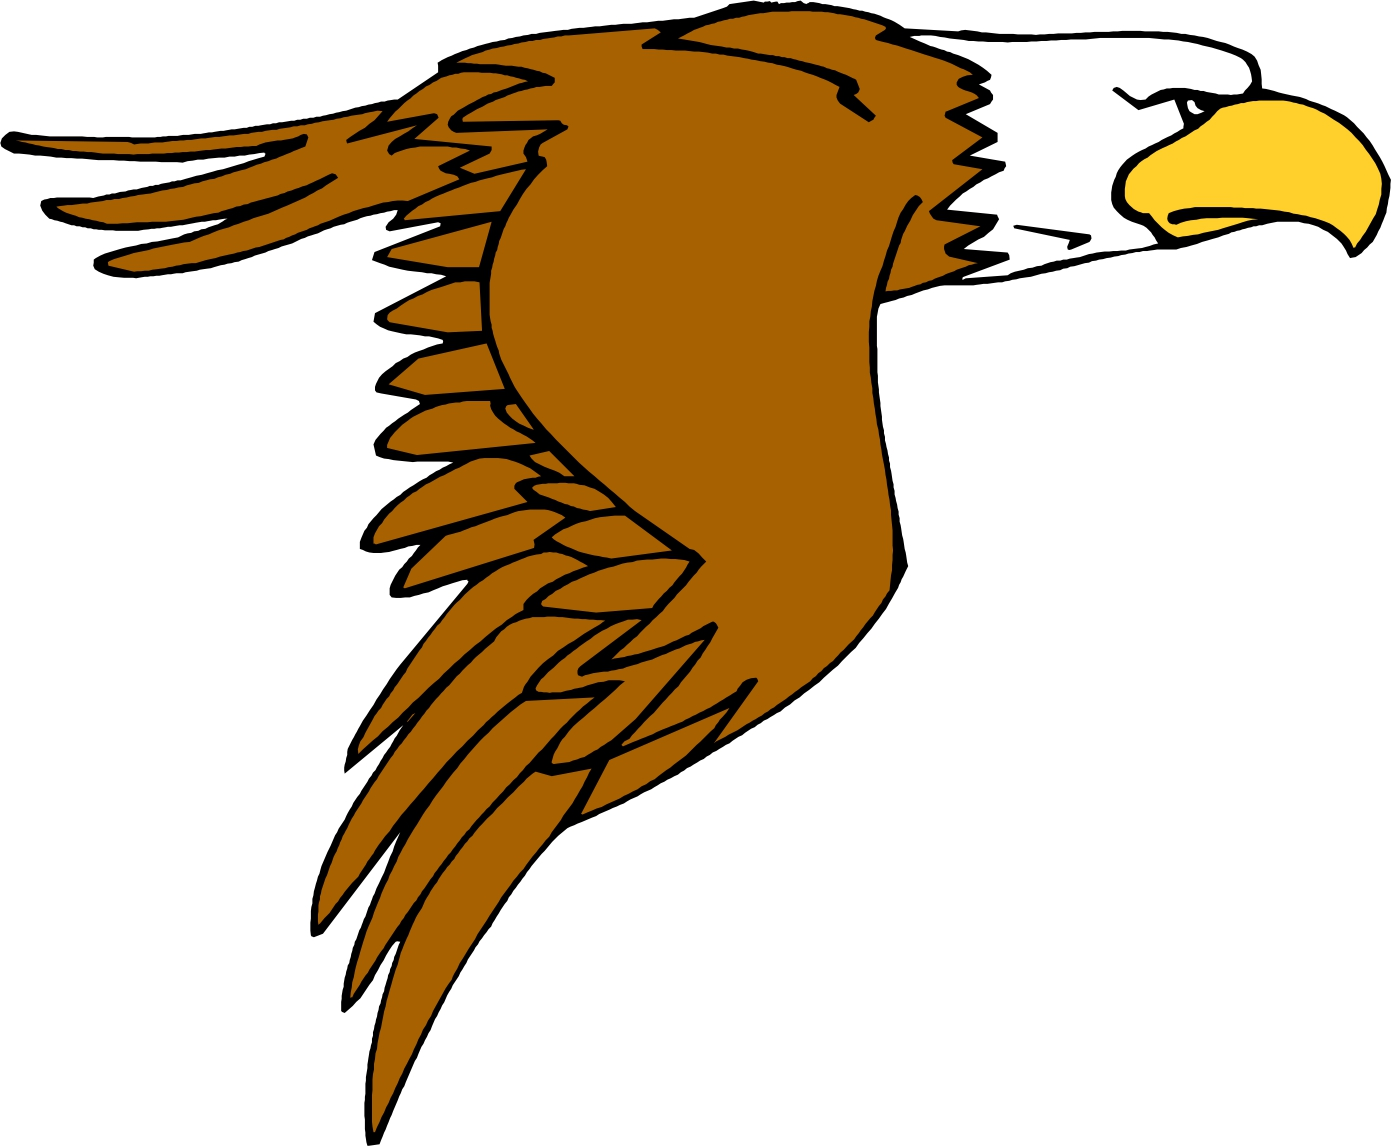 Free Cartoon Eagle Pictures, Download Free Clip Art, Free Clip Art.